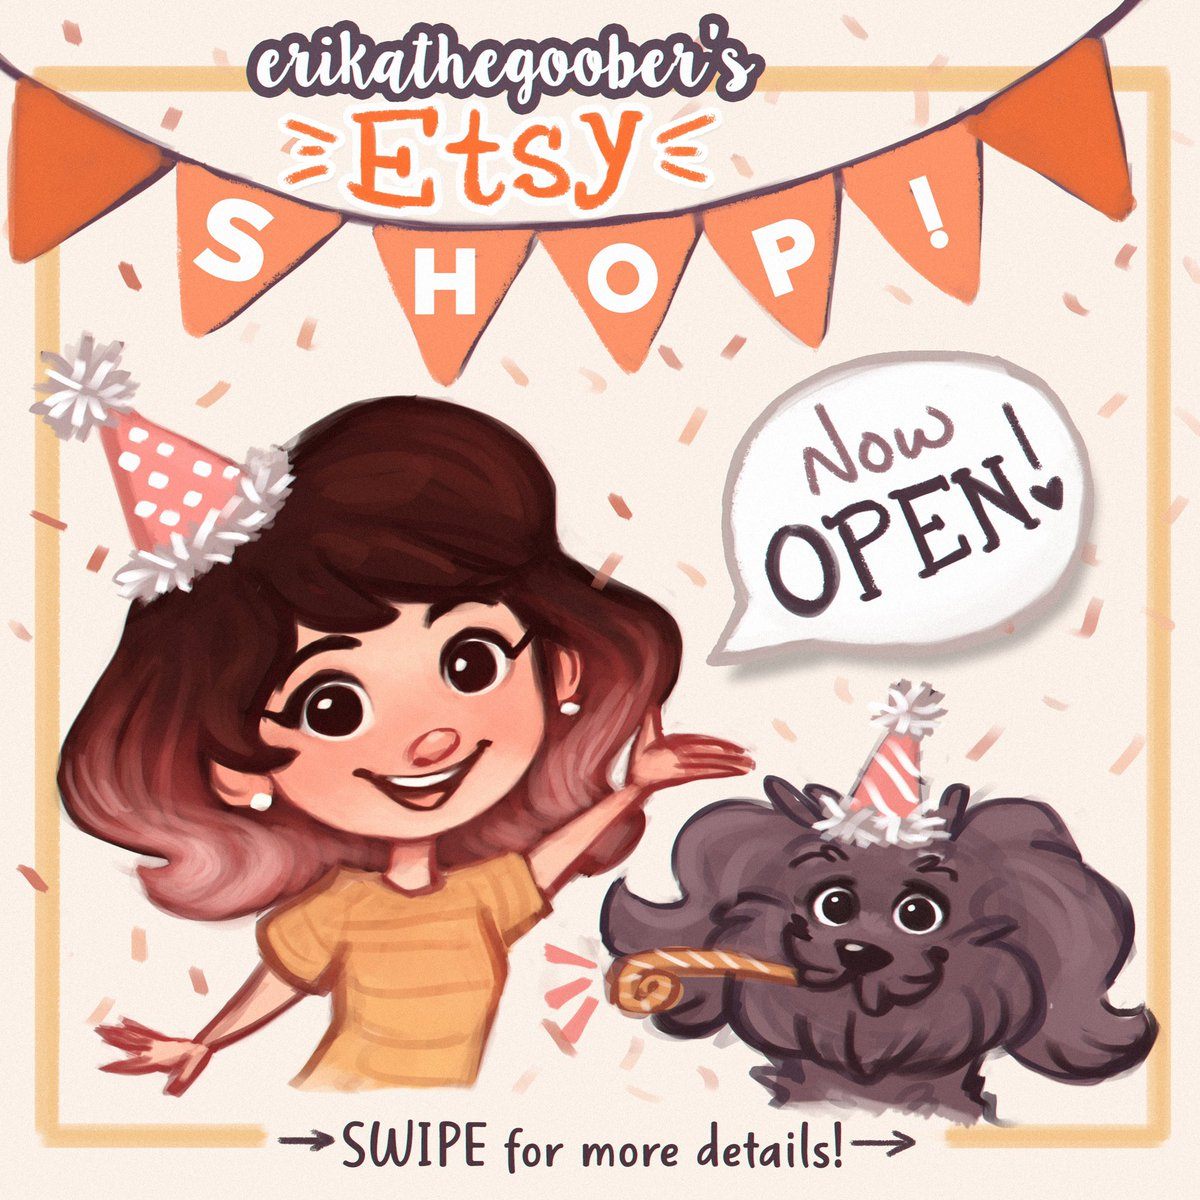 8b630f8f618e6 I opened my Etsy Print + Sticker Shop today! Check it out at http ...